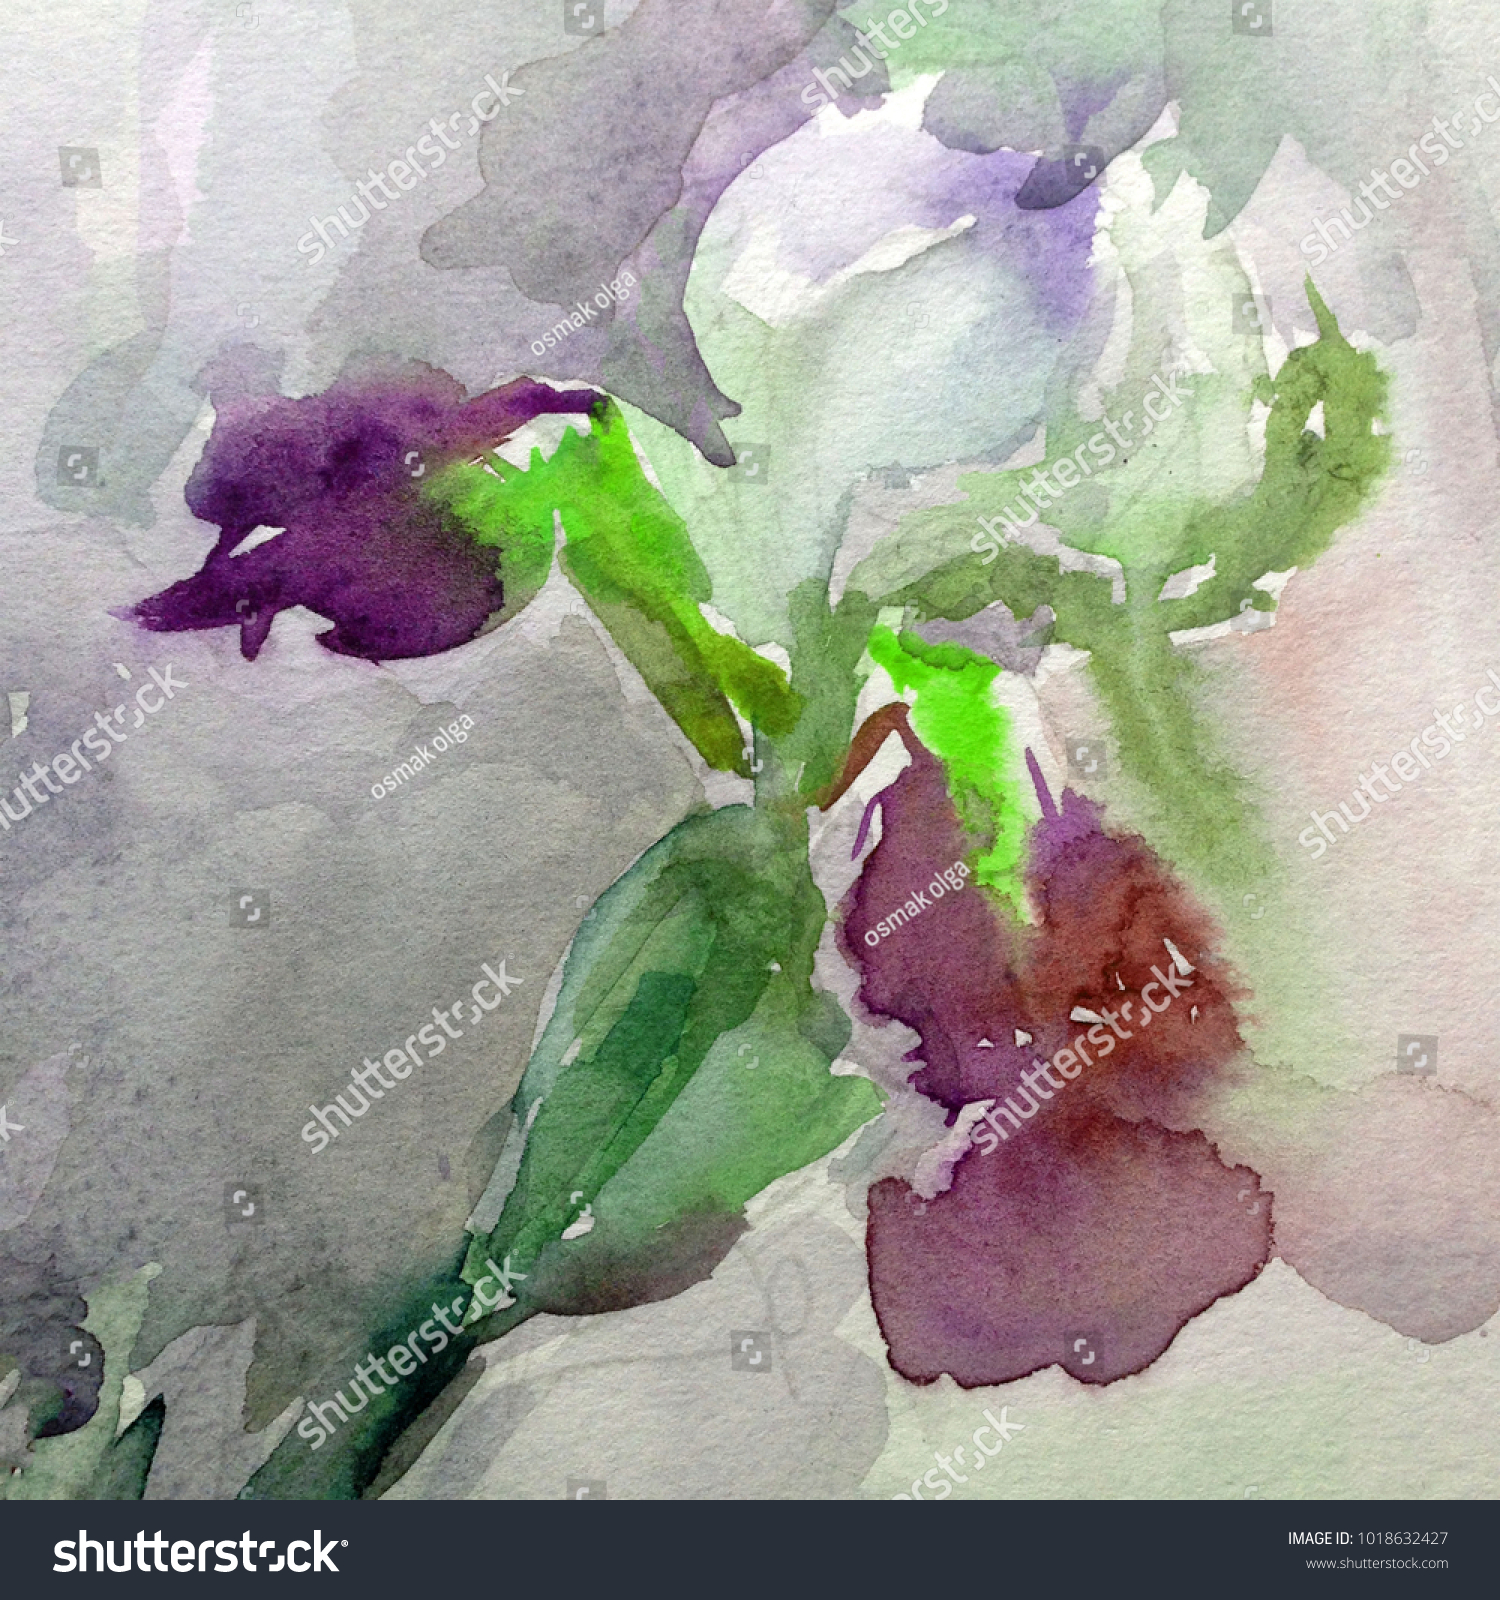 Watercolor art background floral exotic iris stock illustration watercolor art background floral exotic iris stock illustration 1018632427 shutterstock izmirmasajfo